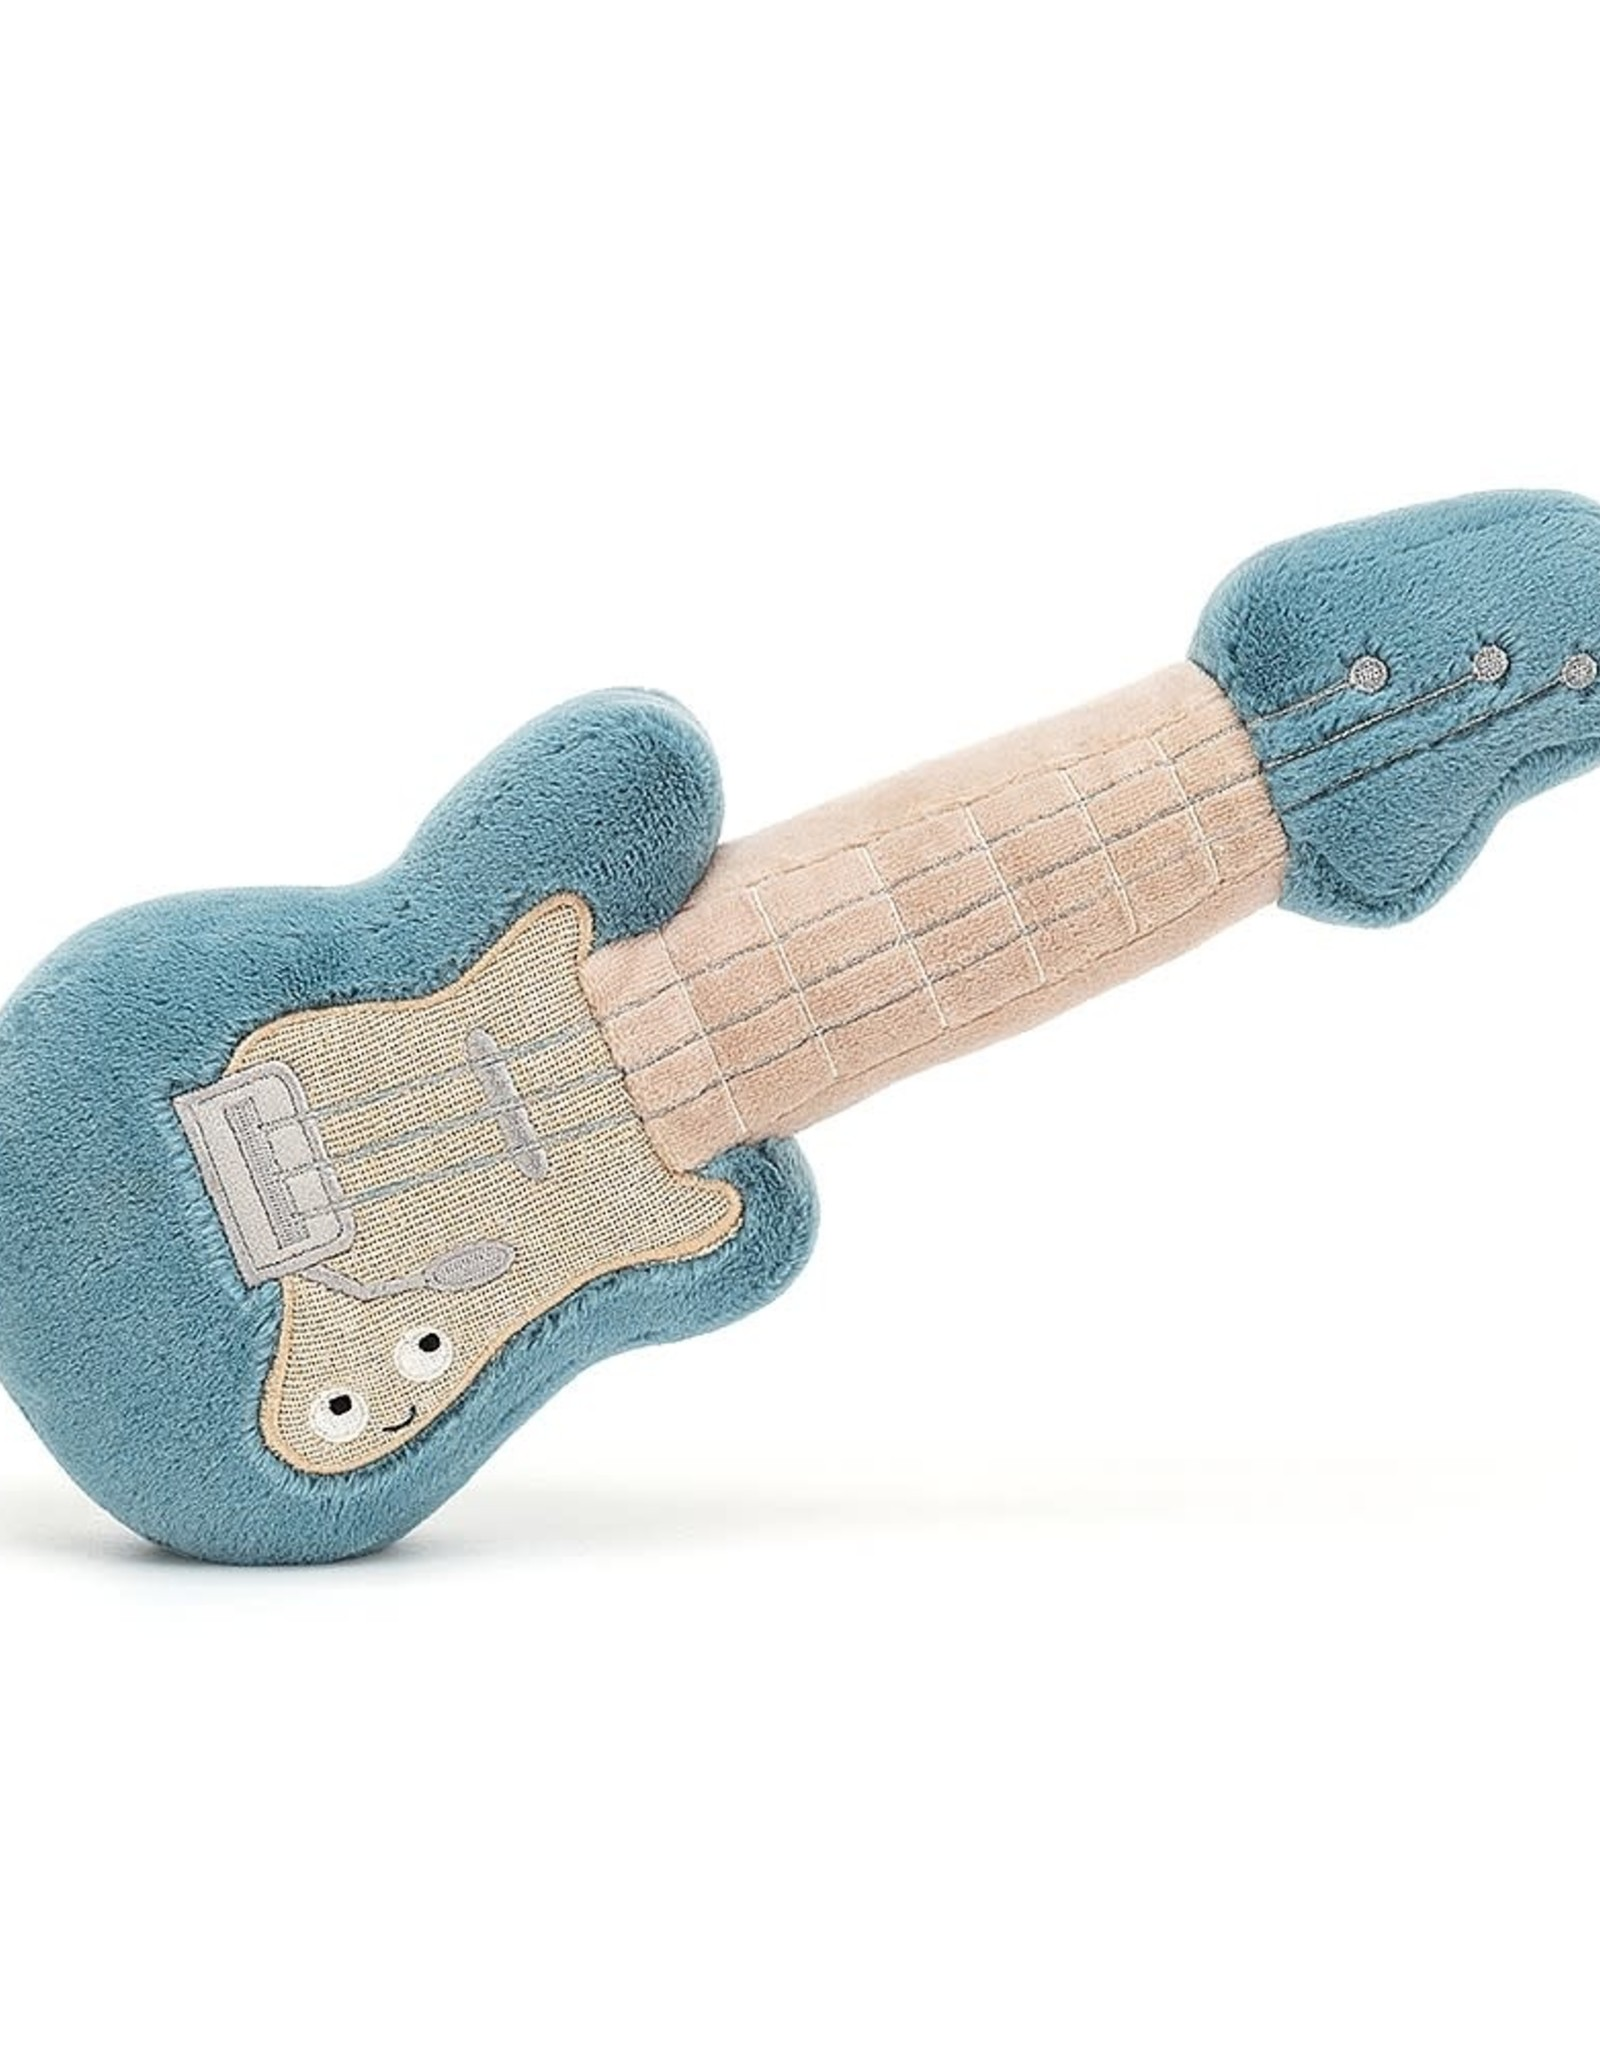 Jelly cat Guitare bleu